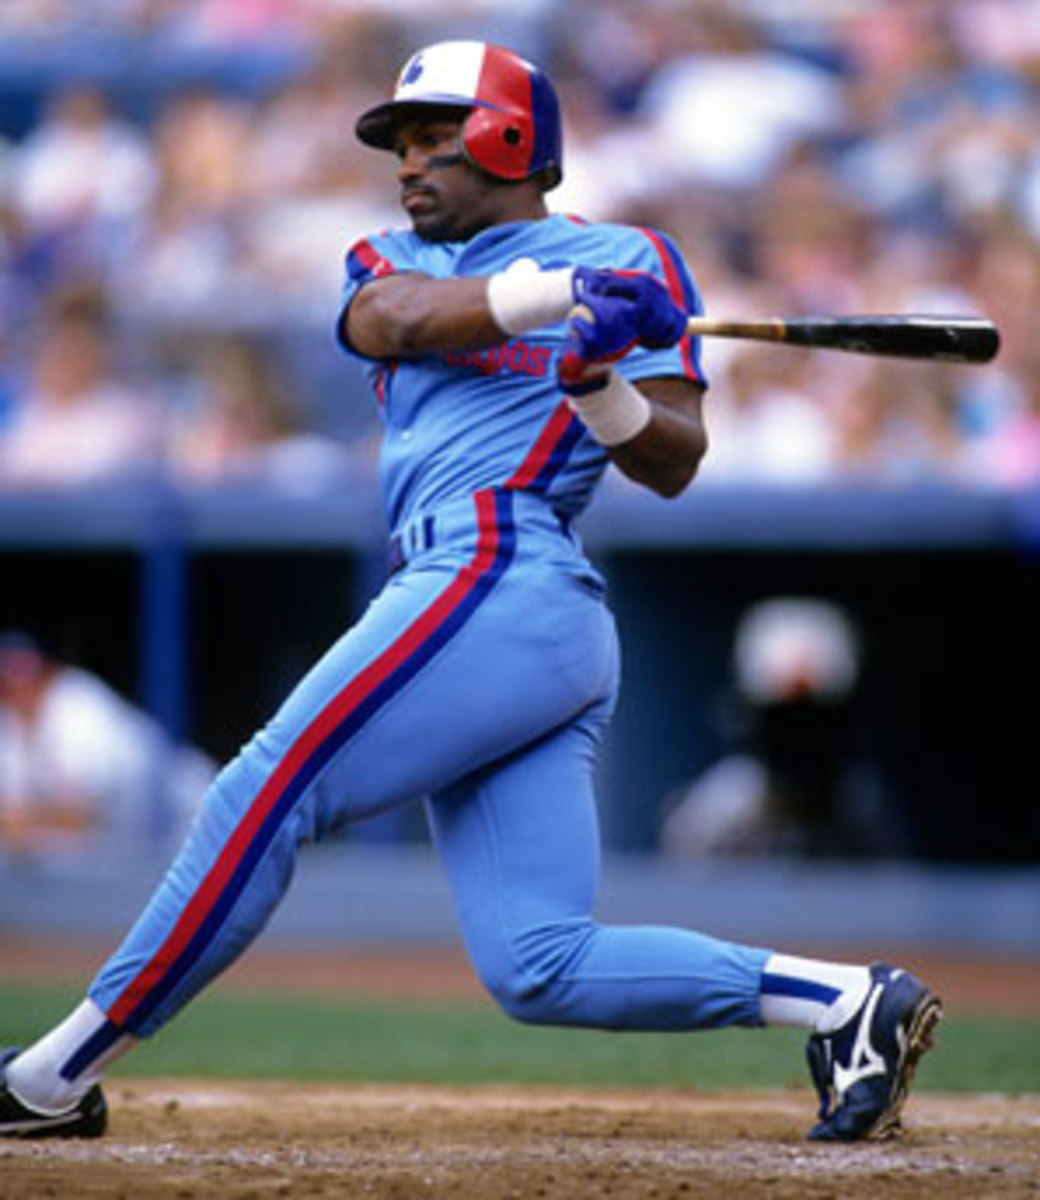 Tim Raines finished with 2,605 hits in 23 MLB seasons. (Tom DiPace)